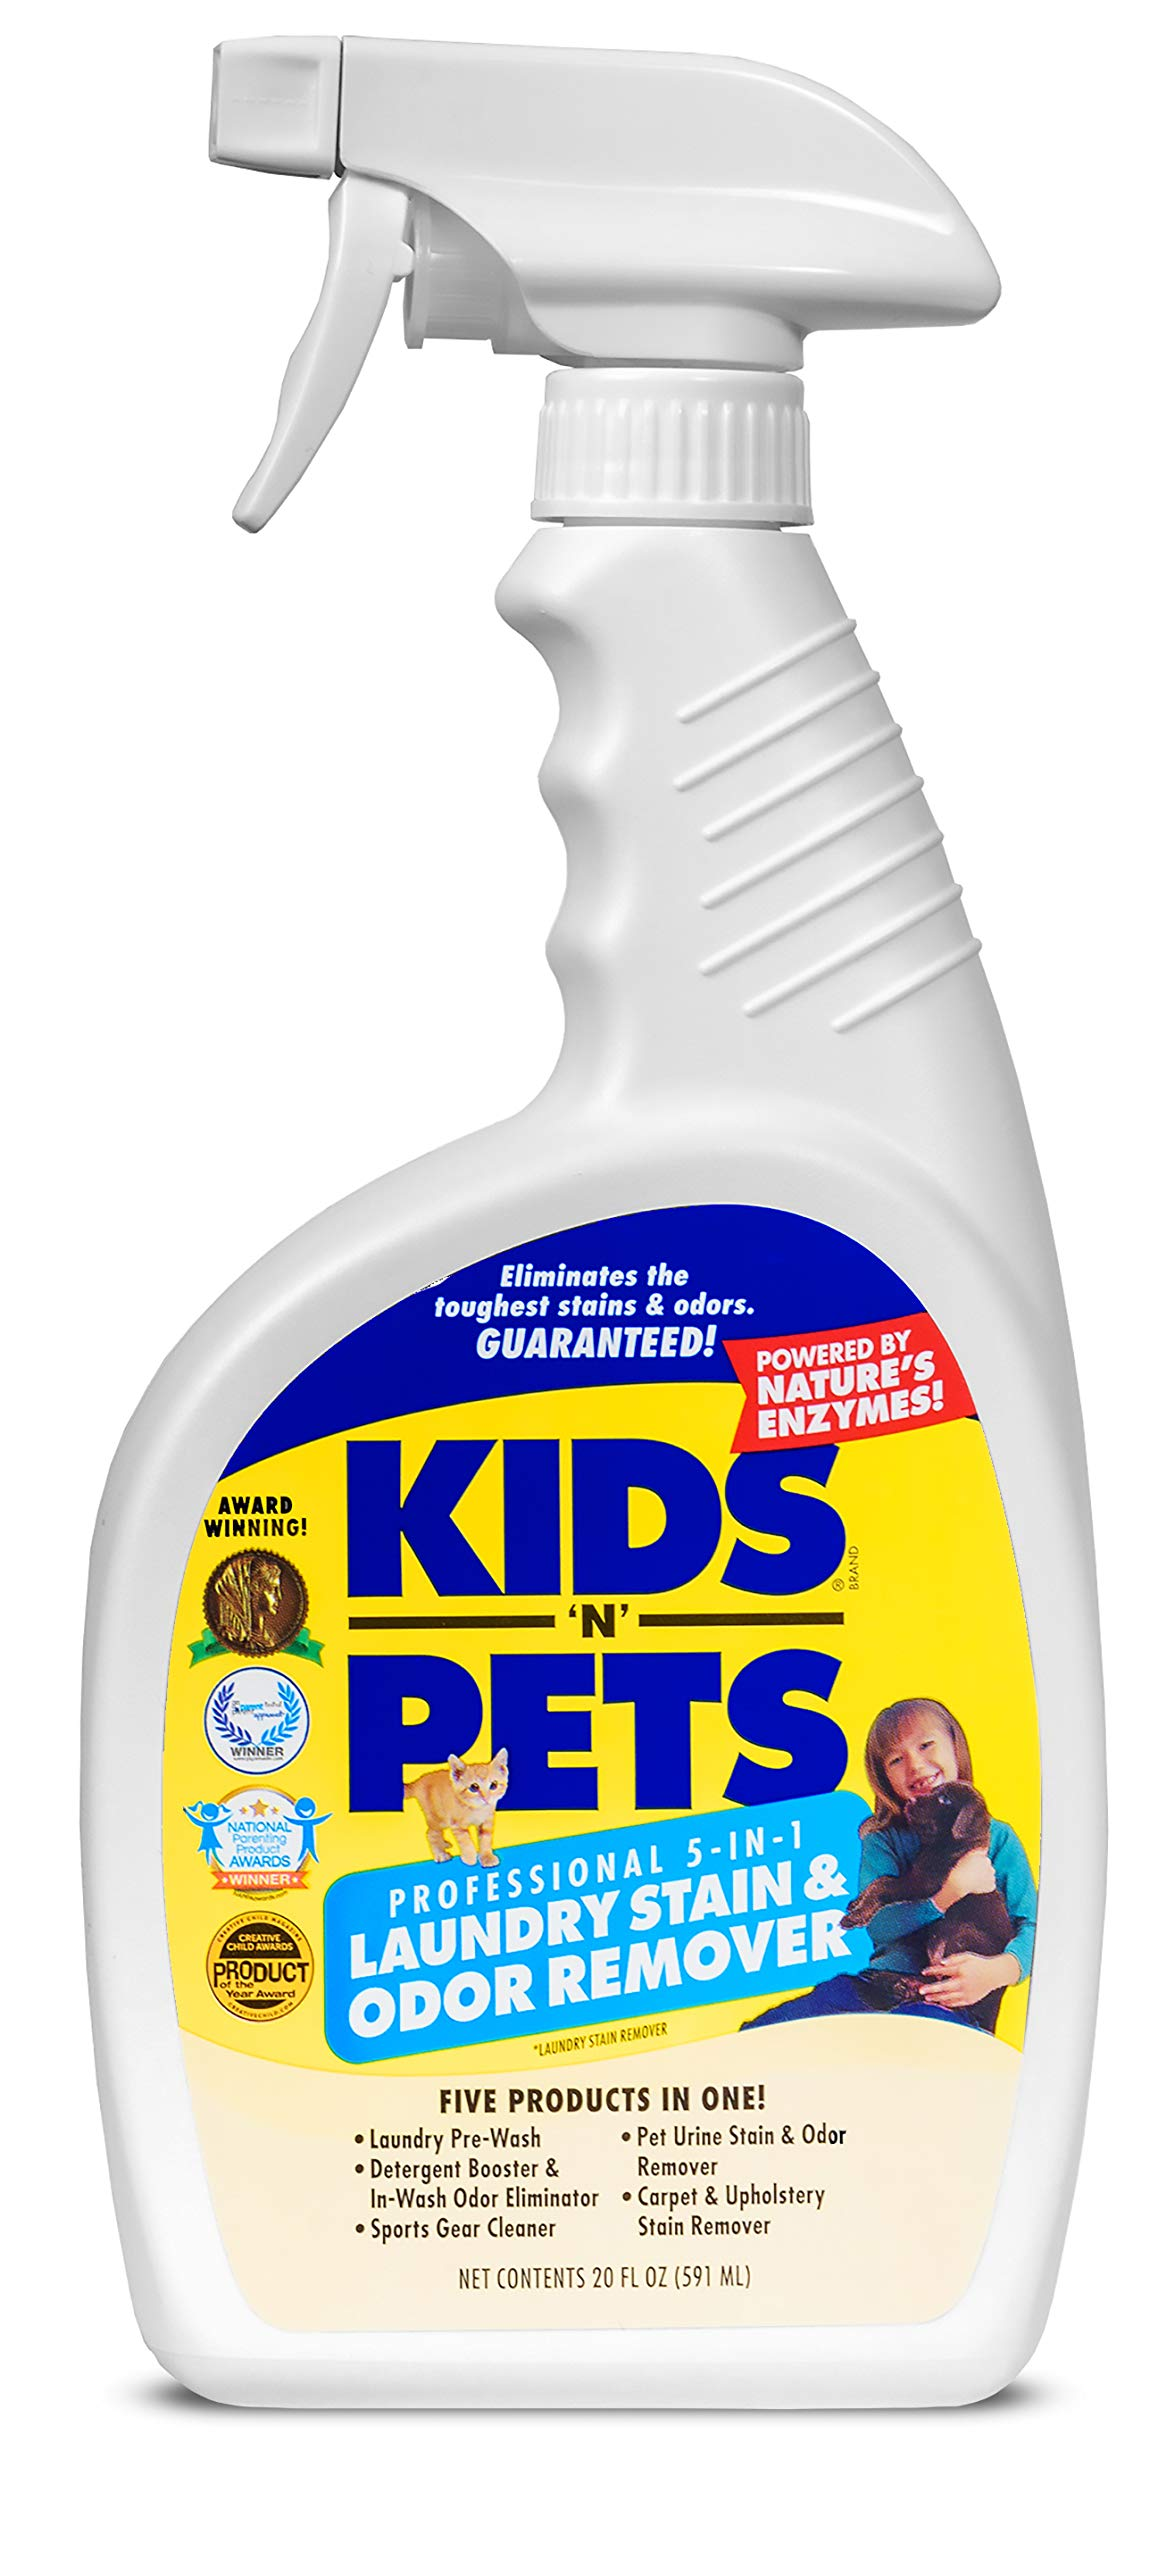 KIDS 'N' PETS - 5-In-1 Laundry Stain & Odor Remover - 20 oz (591 ml) - Professional Strength Formula Eliminates Tough Stains & Odors - No Harsh Chemicals, Non-Toxic & Child Safe by KIDS 'N' PETS